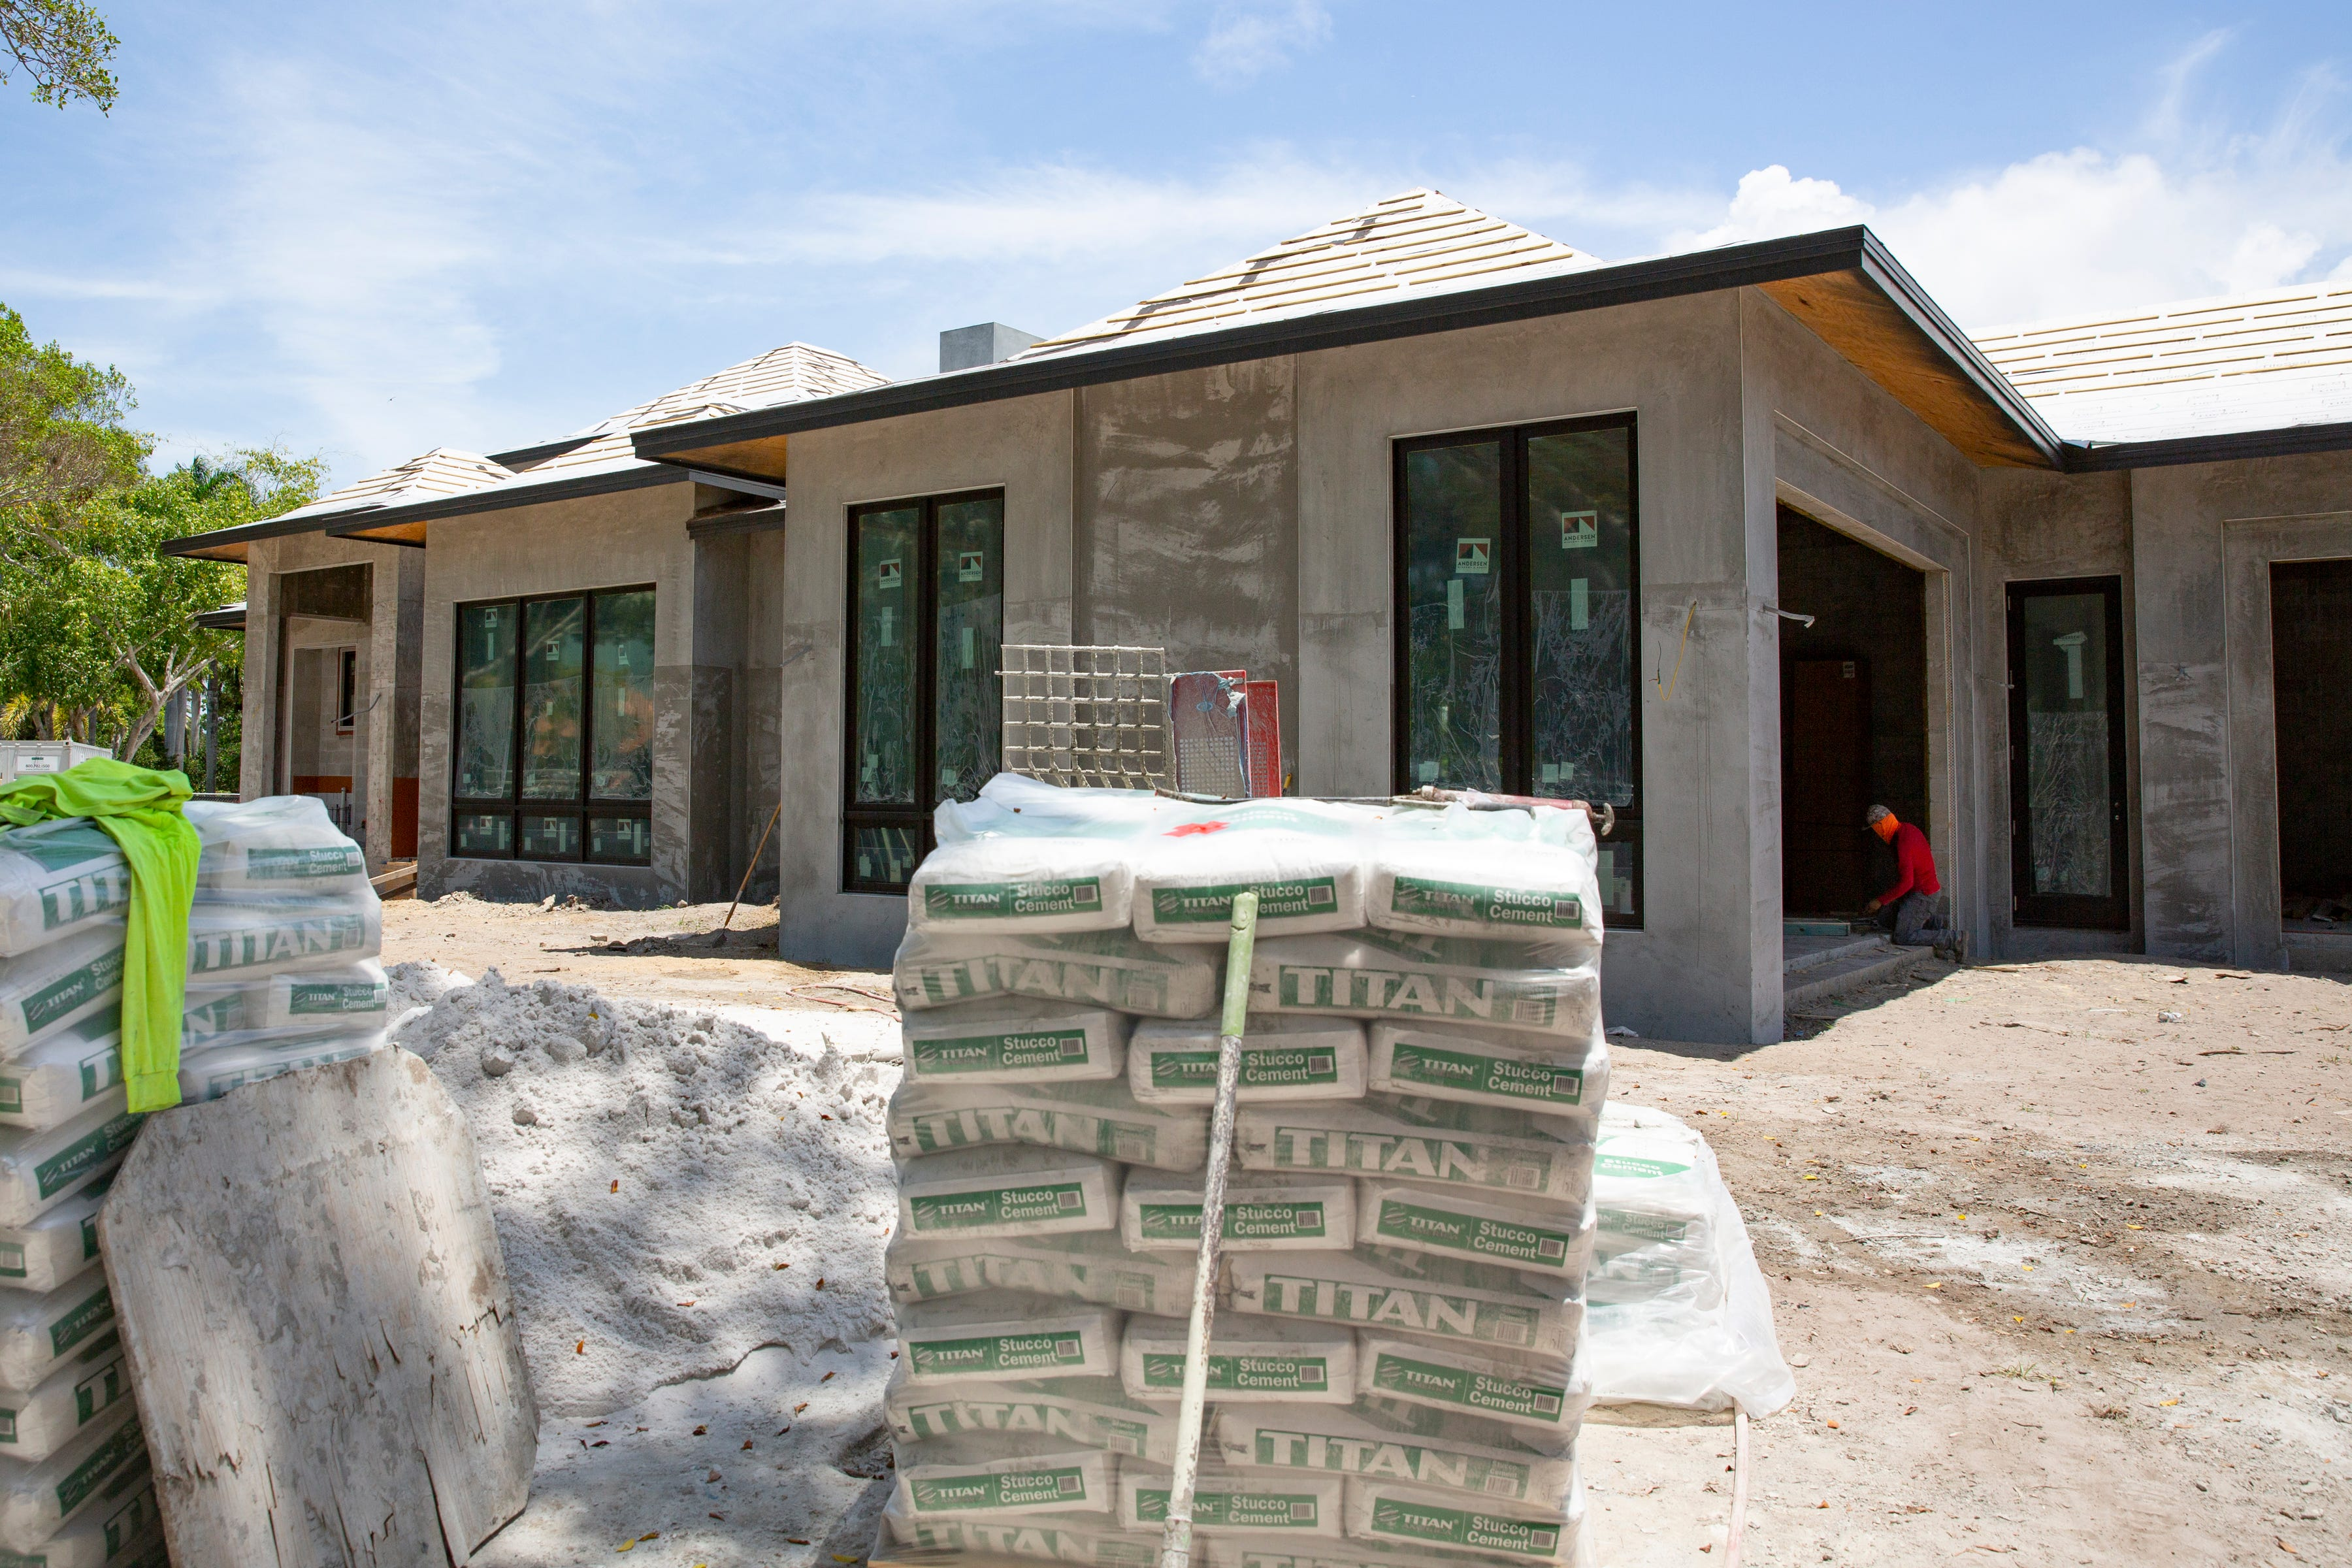 'Like gas to a fire': Hot SWFL housing market brings top prices, frustrated home seekers 3